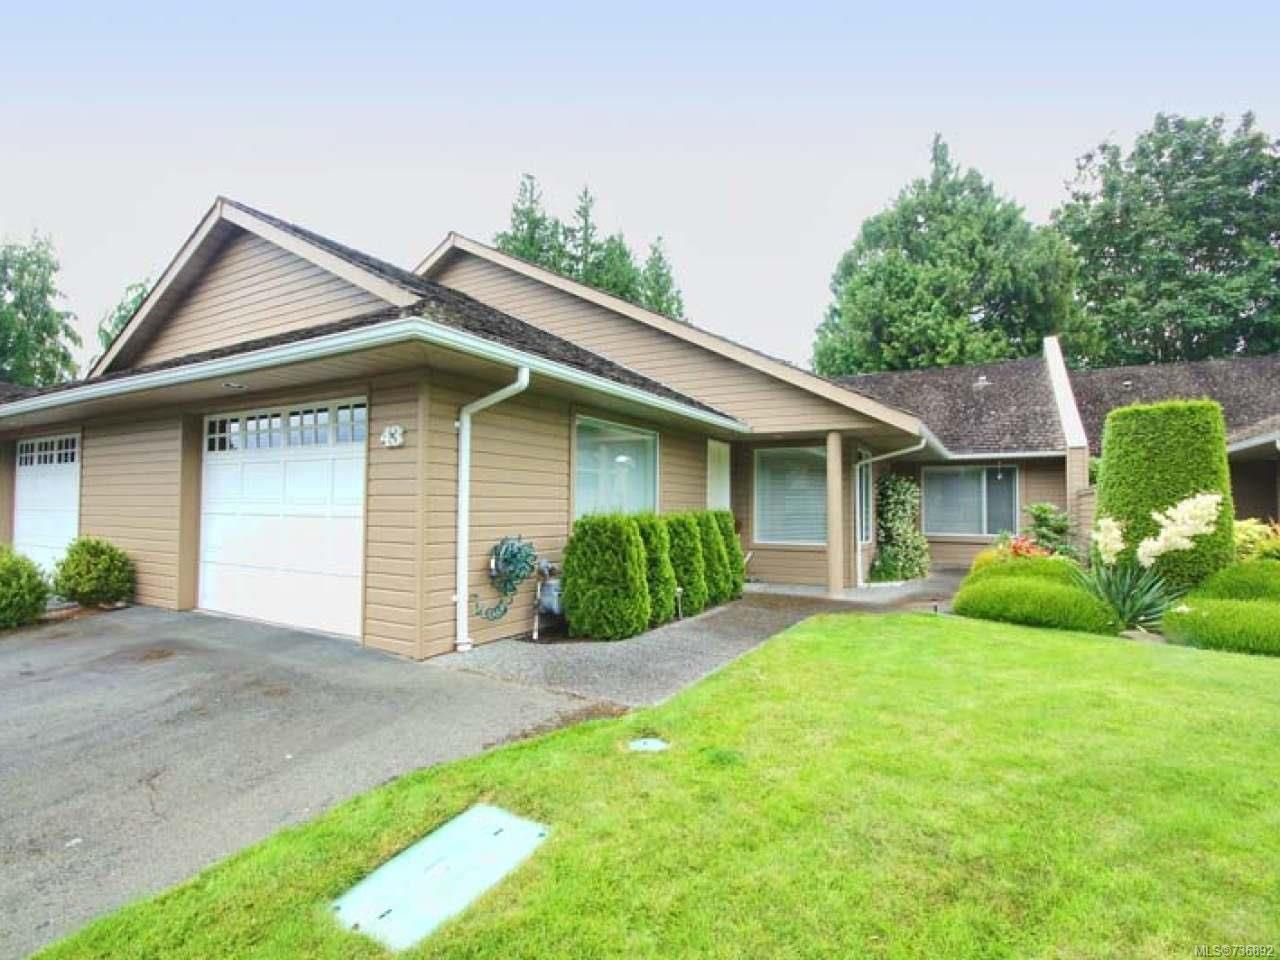 Main Photo: 43 529 JOHNSTONE ROAD in PARKSVILLE: PQ French Creek Row/Townhouse for sale (Parksville/Qualicum)  : MLS®# 736892